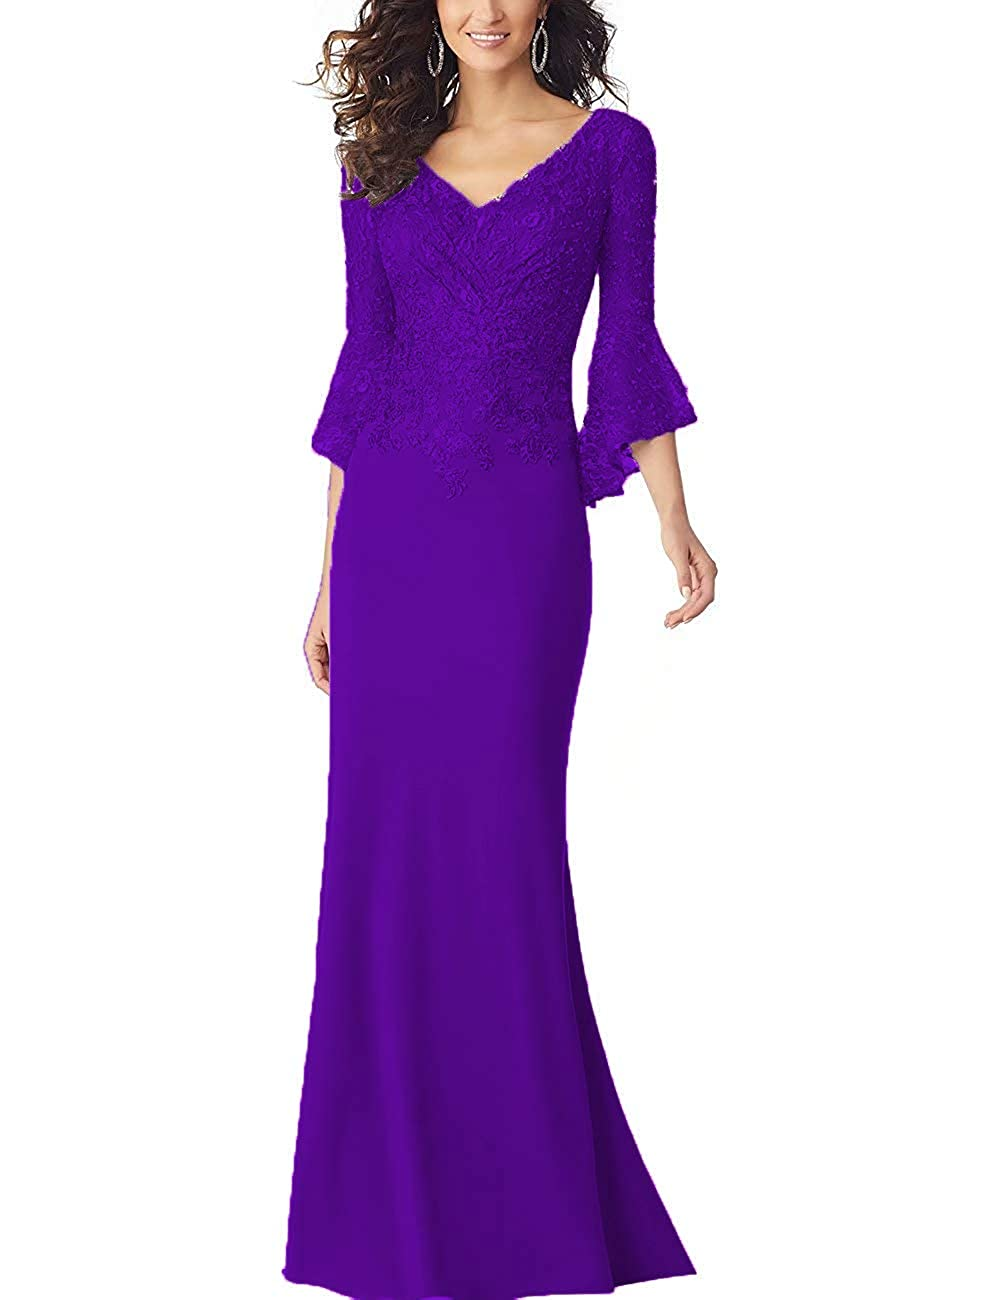 Purple PearlBridal Women's Bodycon Mermaid Mother of The Bride Dresses Lace Ruffle Sleeves Long Evening Party Gown